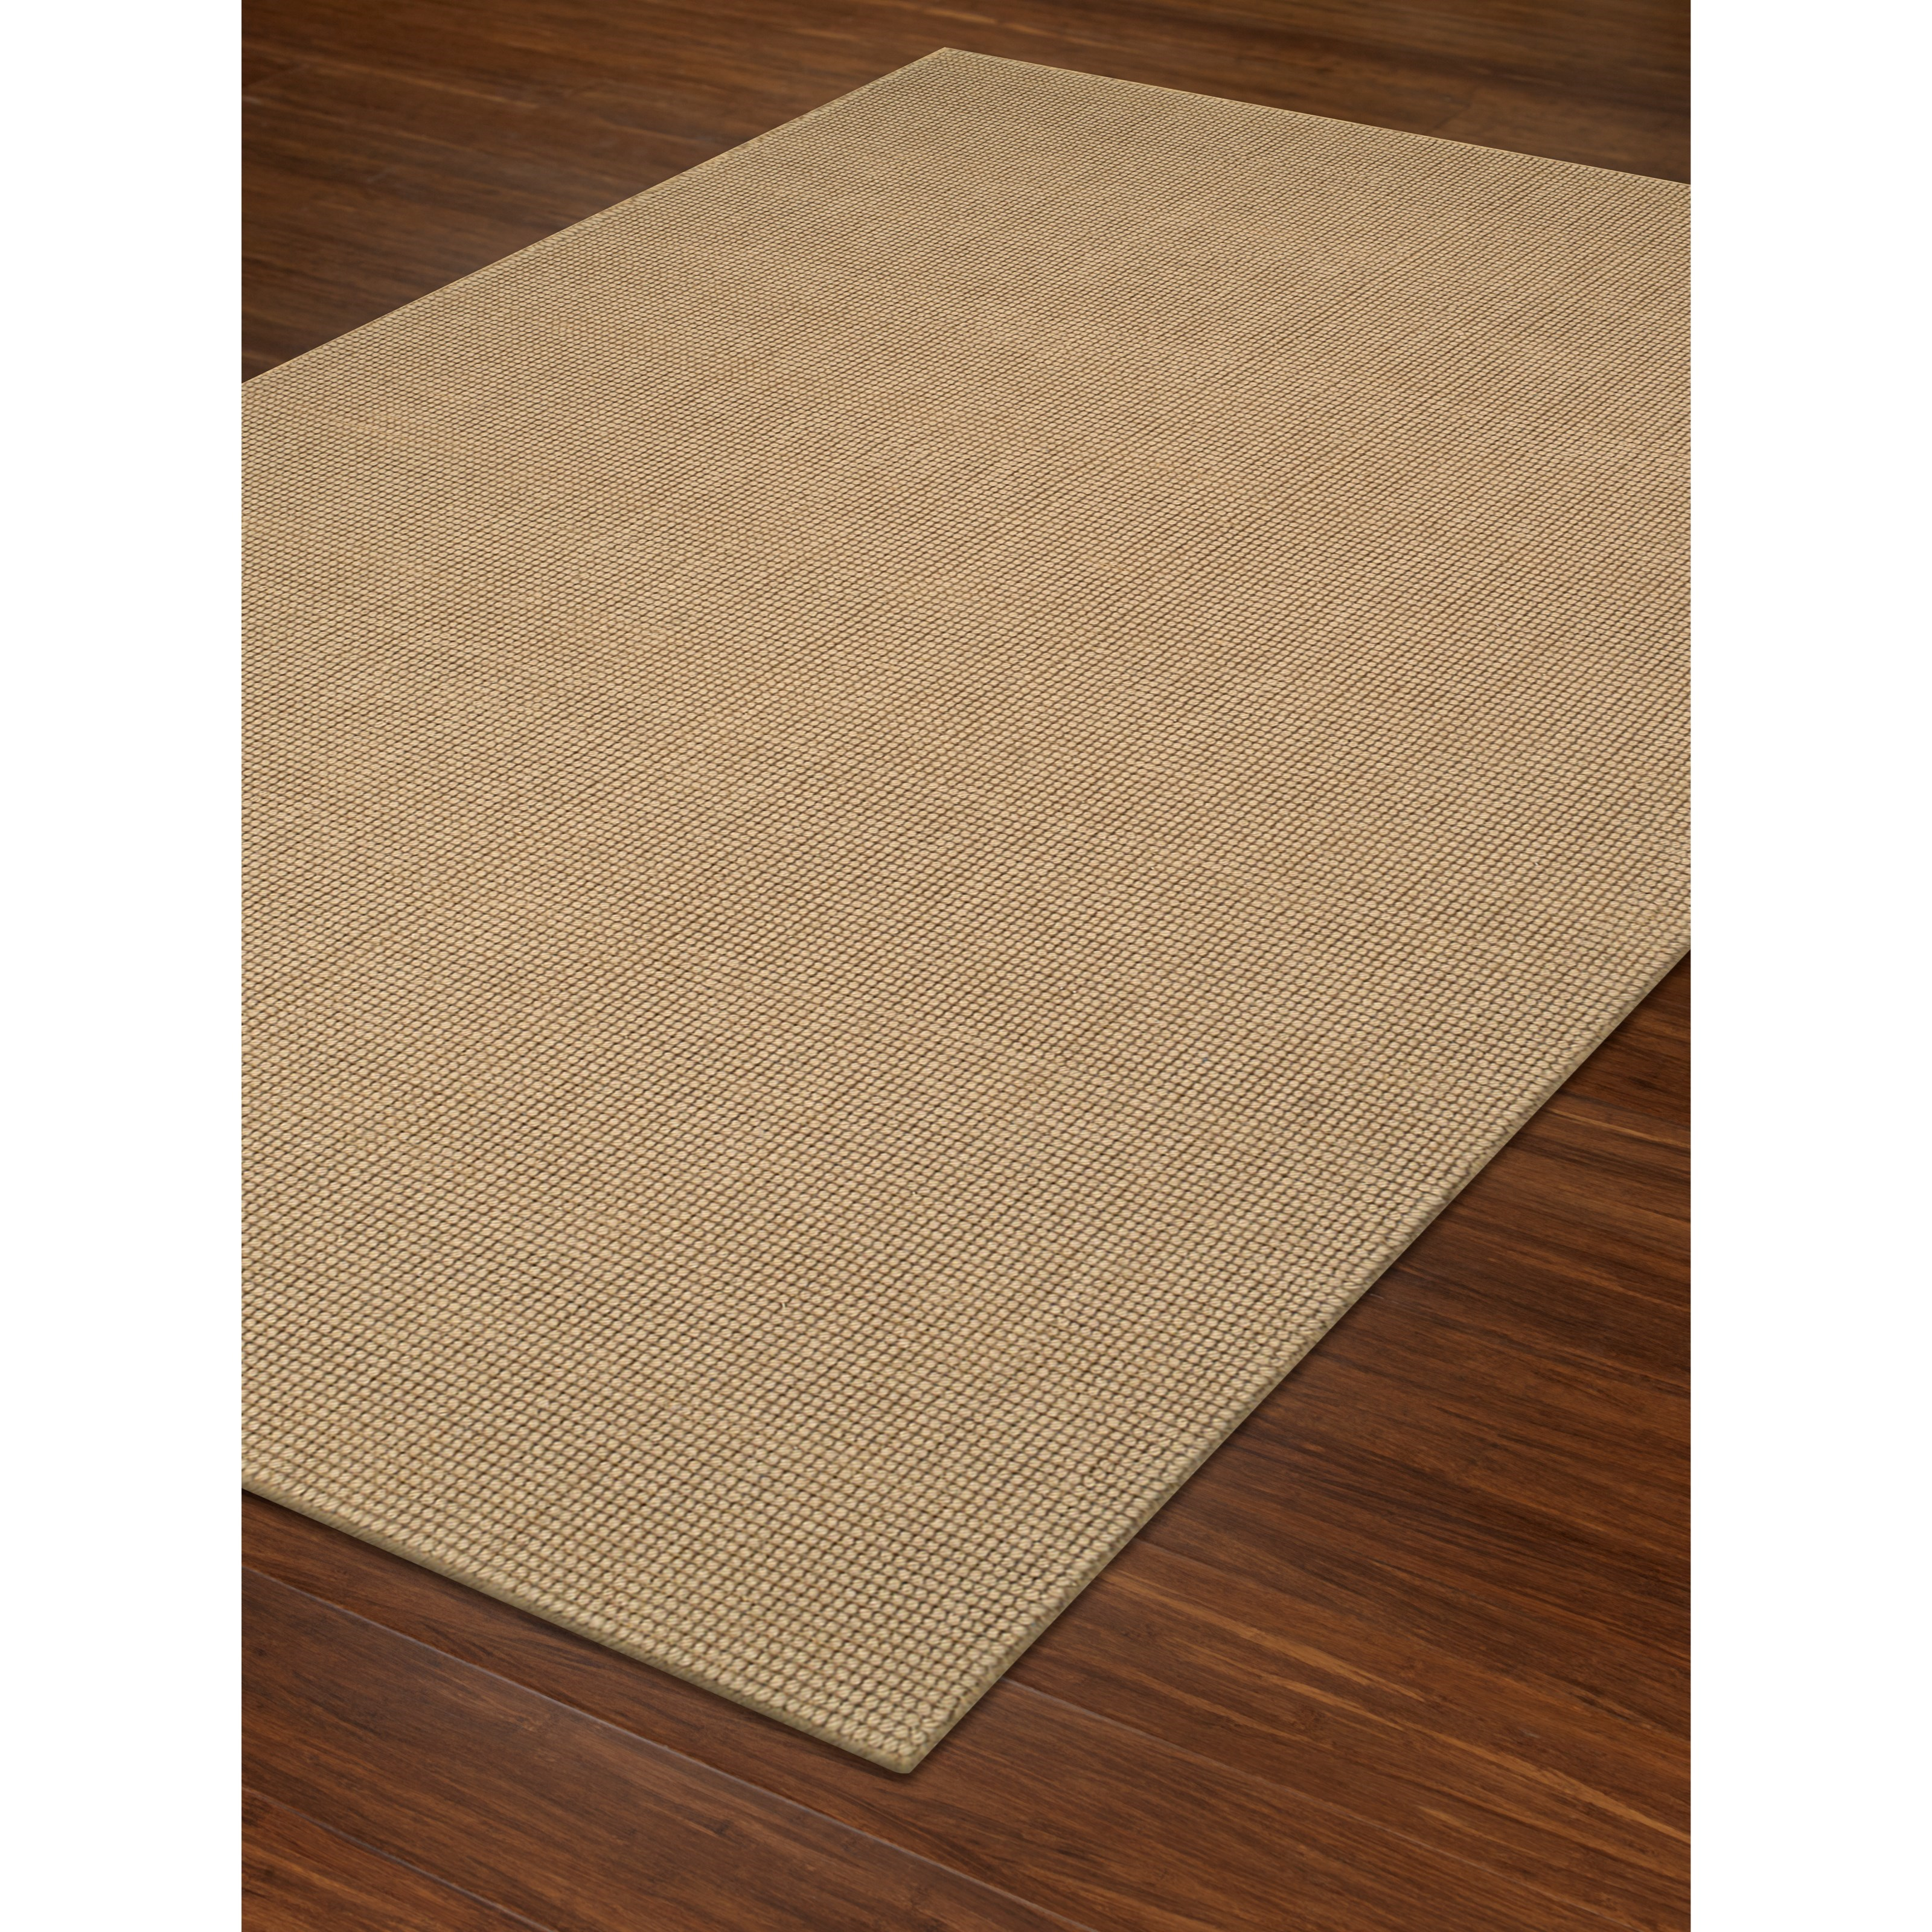 Monaco Sisal Wheat 5' x 8' Rug at Walker's Furniture